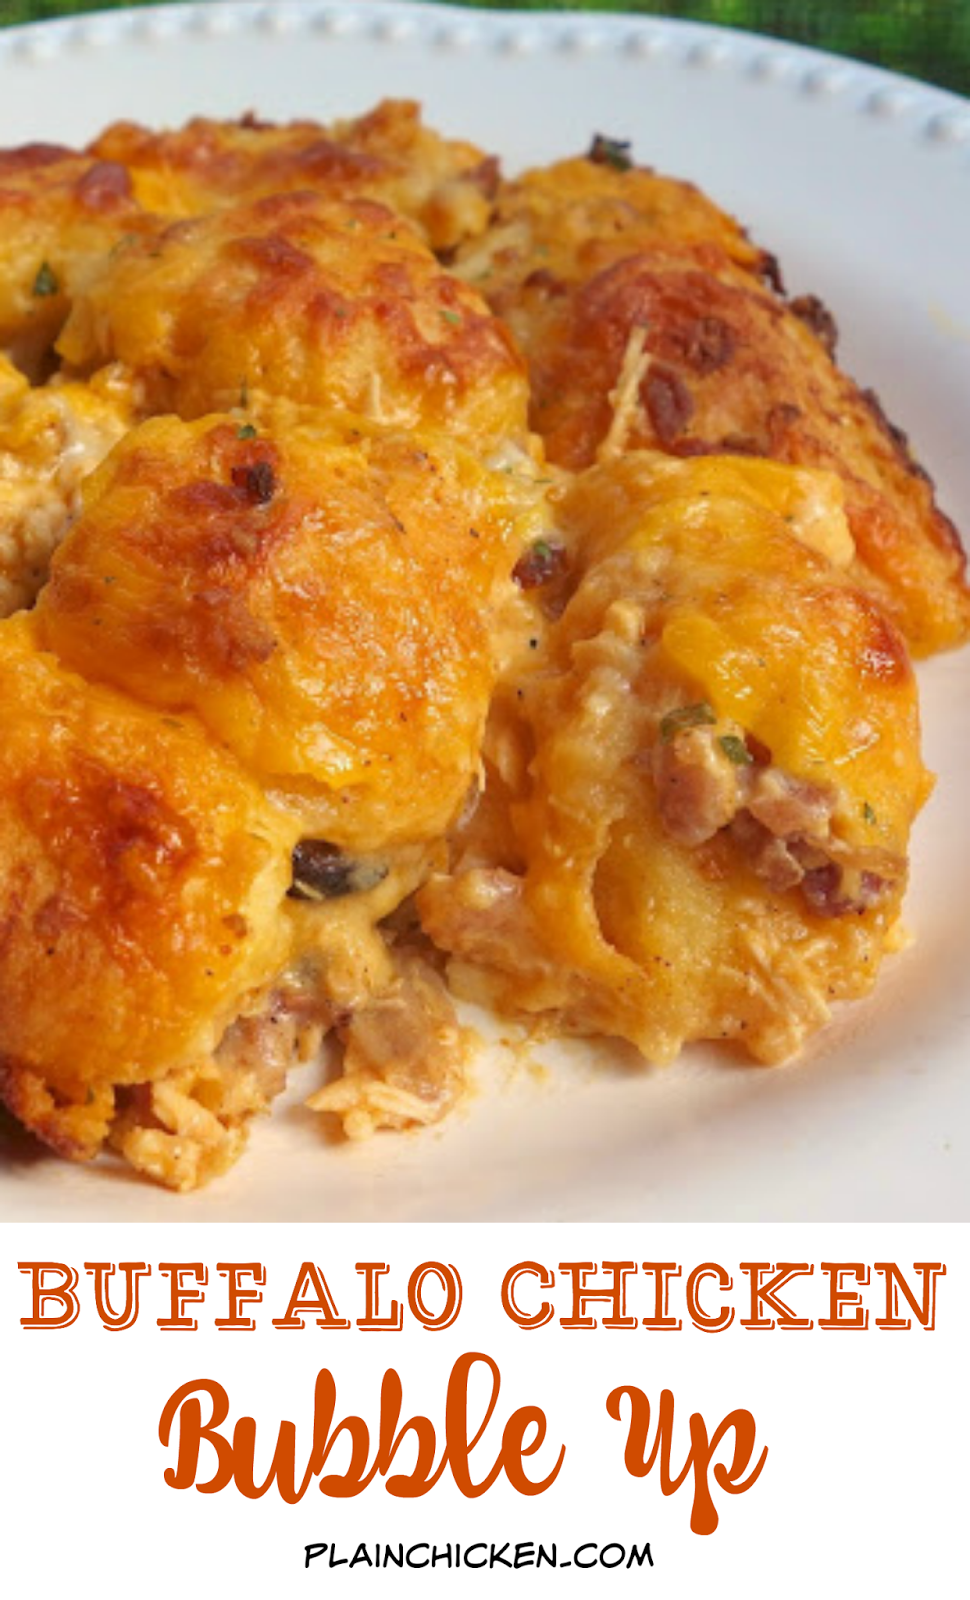 Buffalo Chicken Bubble Up - chicken, buffalo sauce, Ranch and cheddar tossed in biscuits. Crazy good! My husband could not stop raving about this casserole. He asked me to make it again the next night! Great for football parties too!